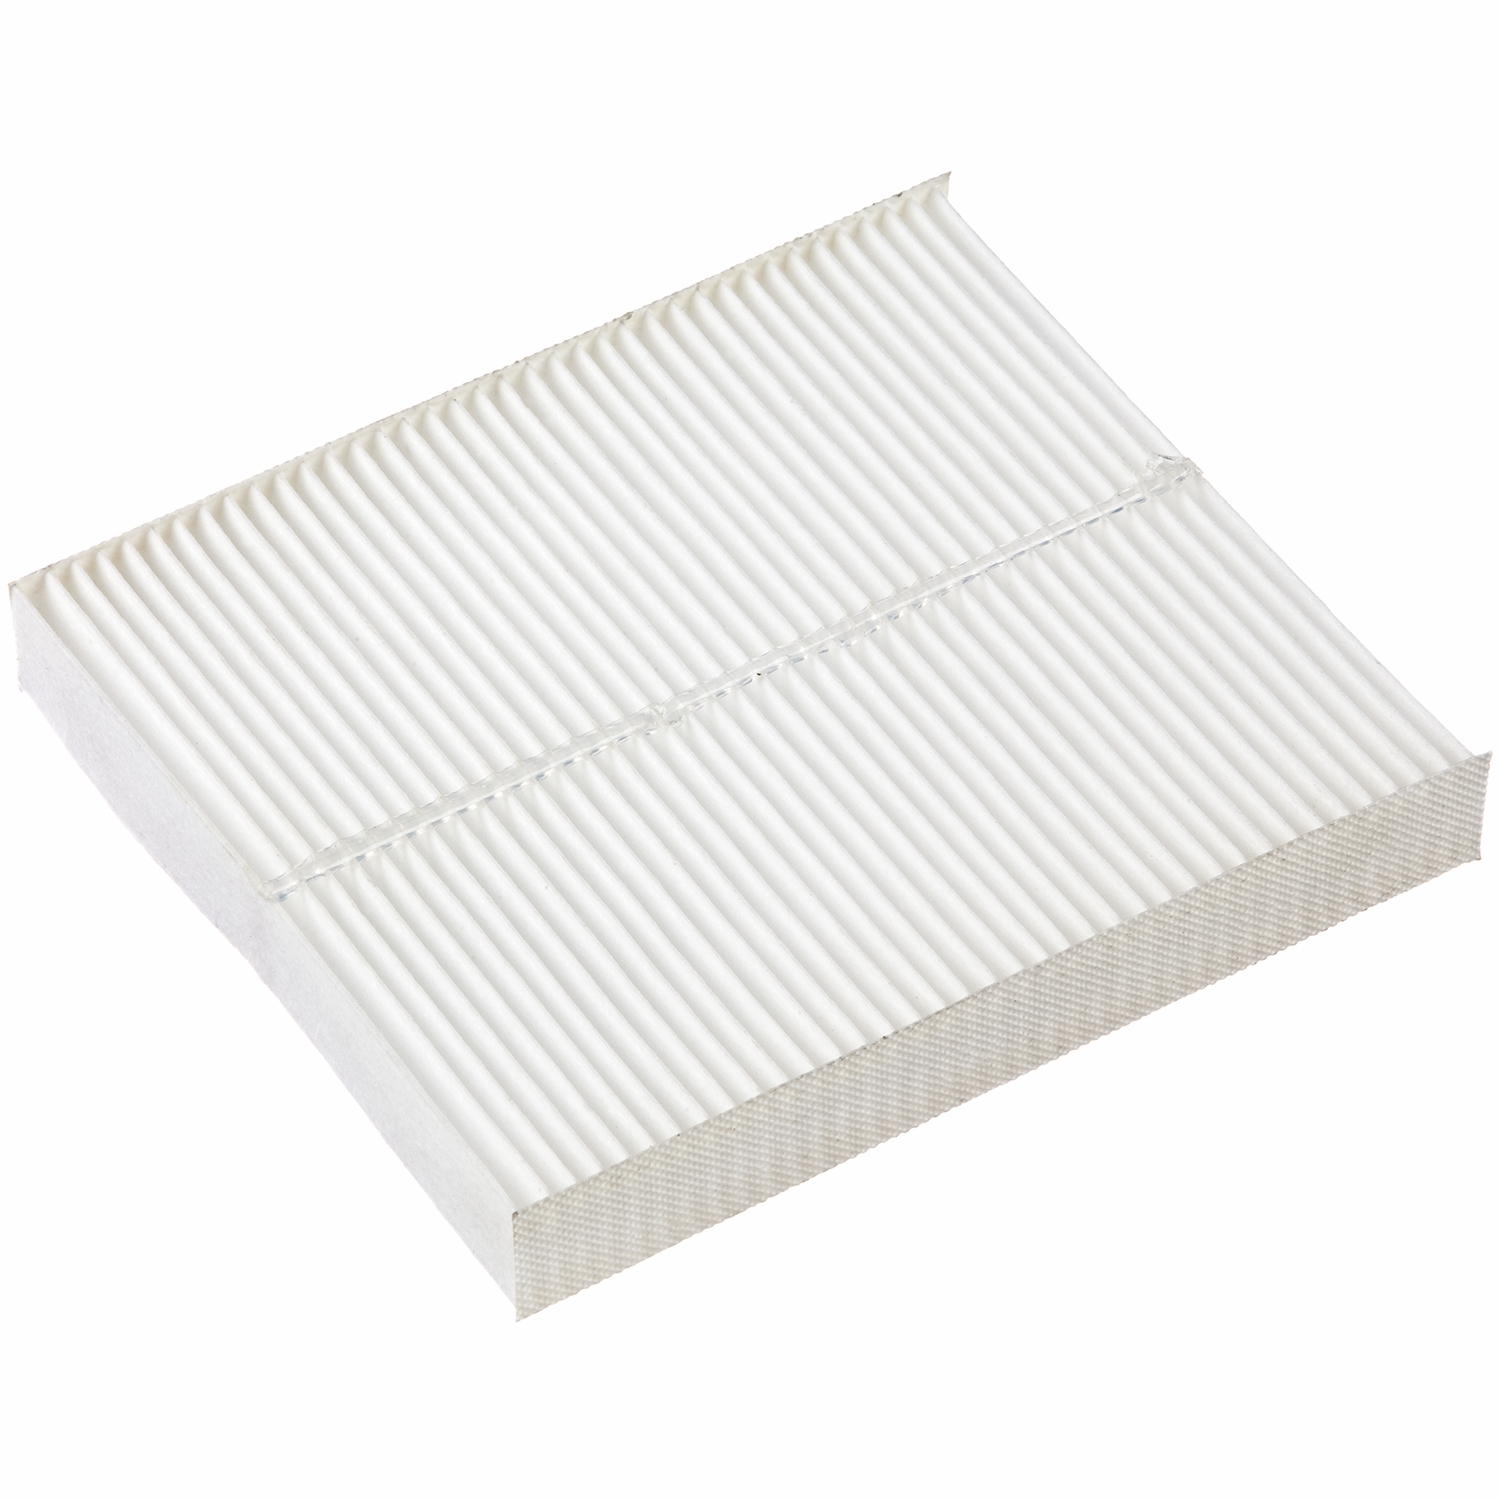 Atp Cf21 Inc Value Line Vent Filter